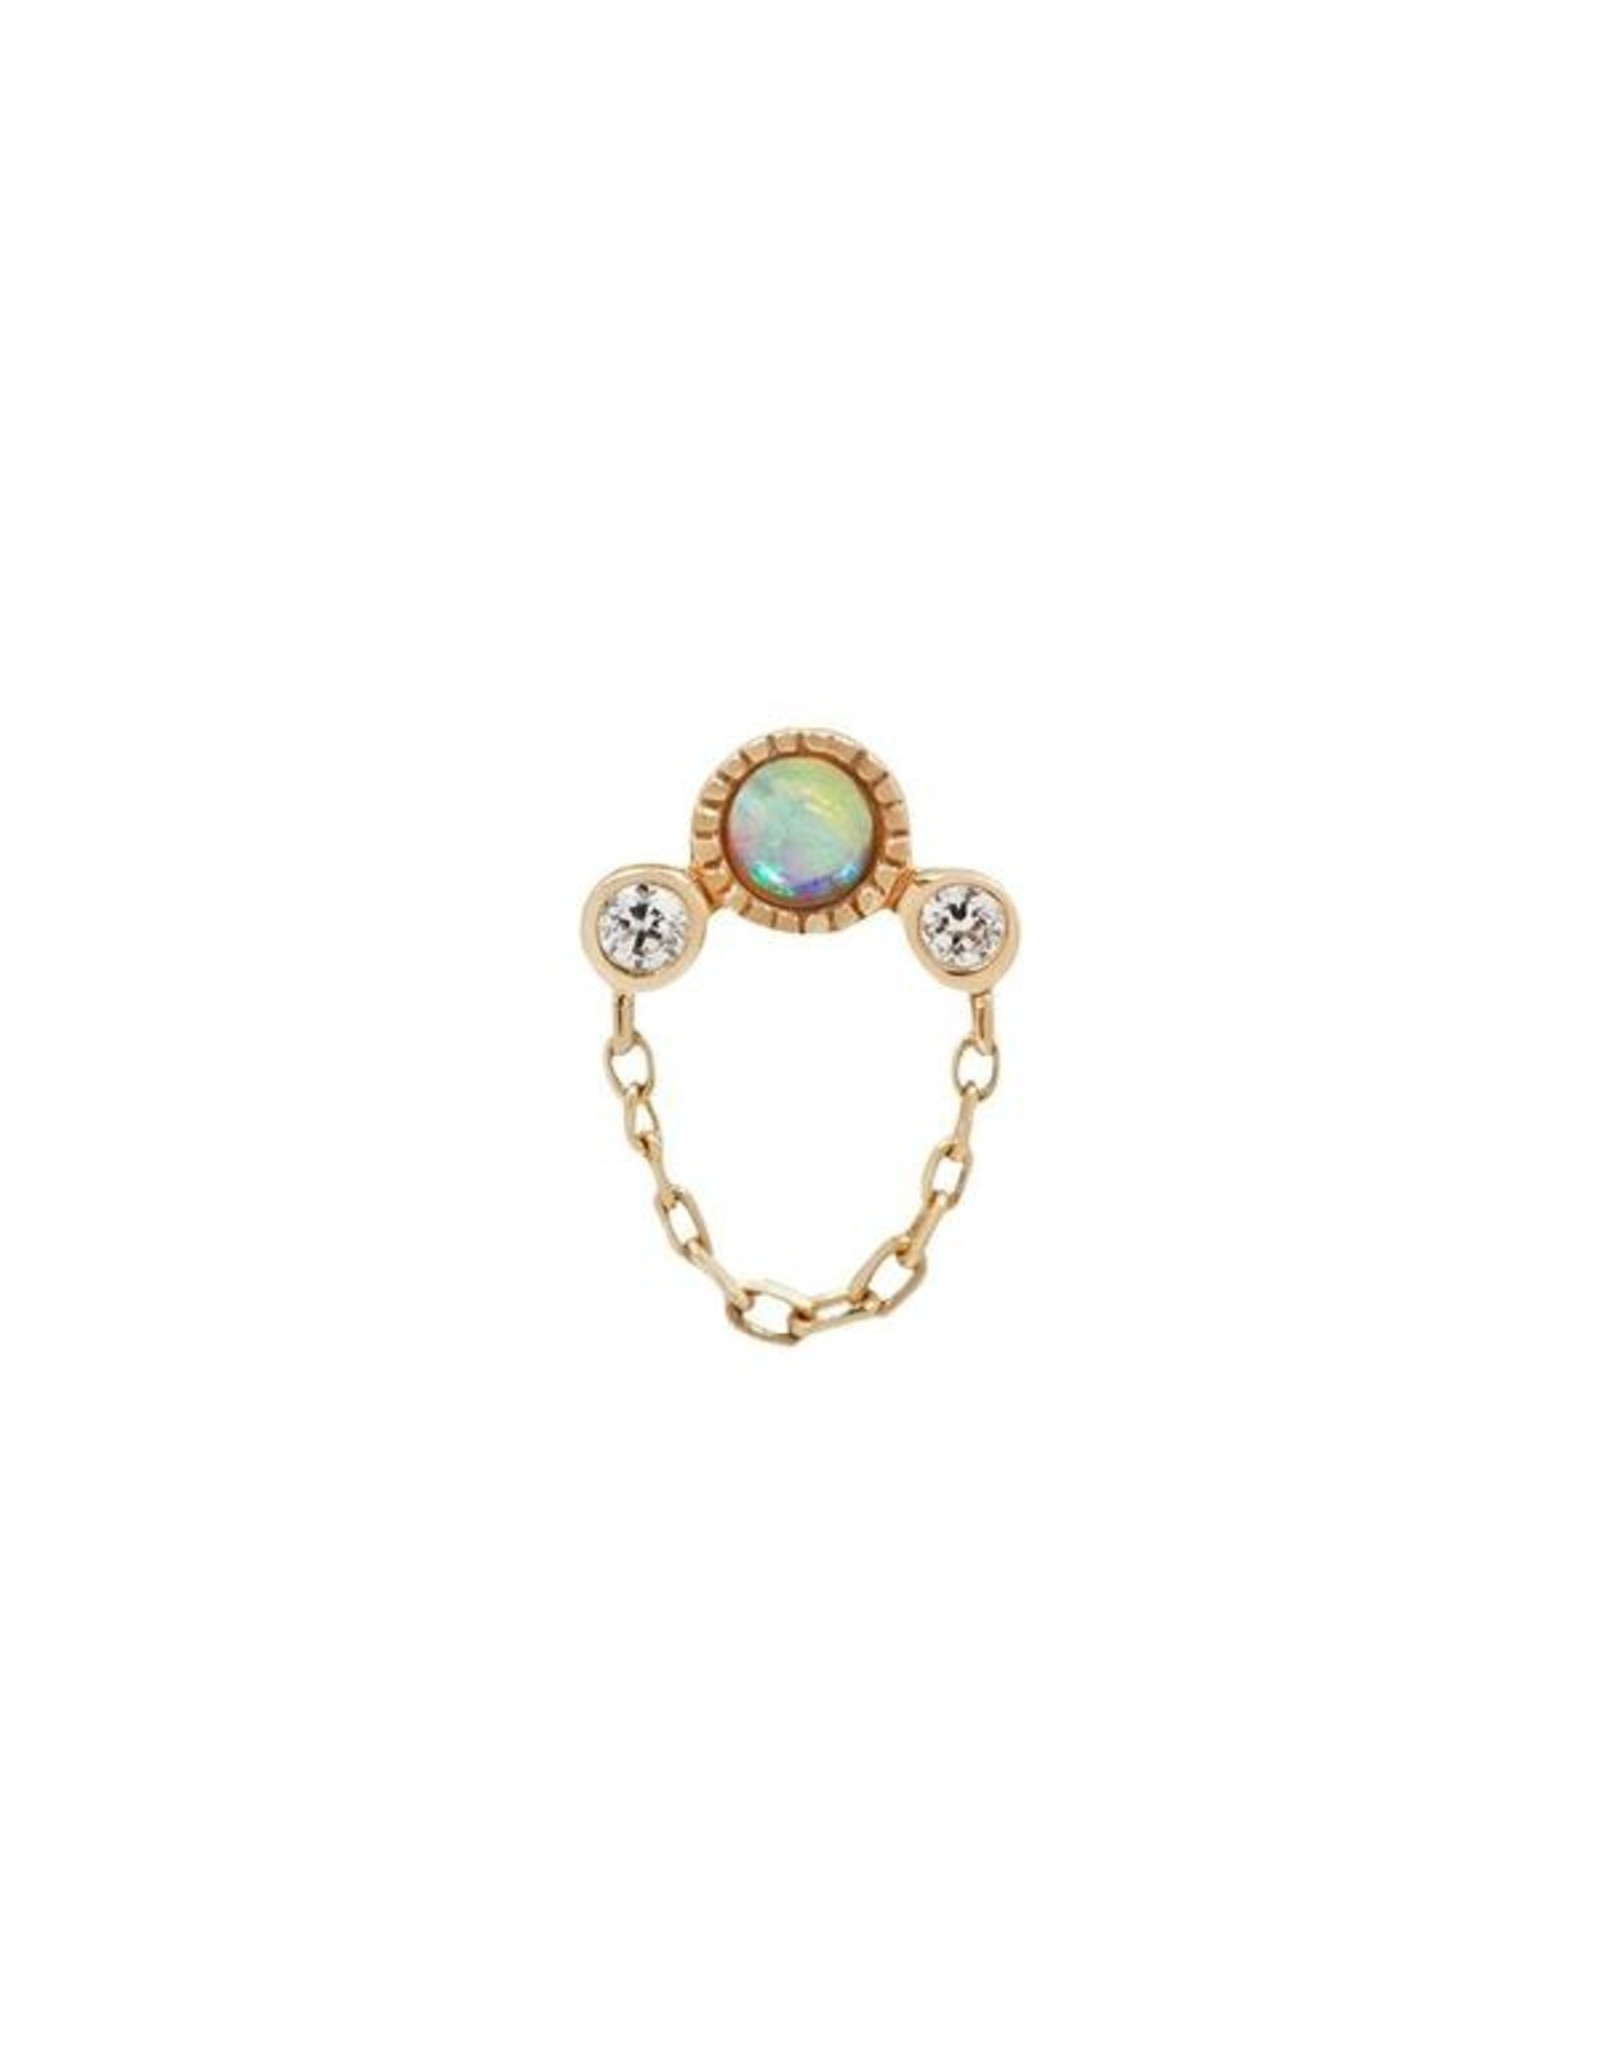 """Buddha Jewelry Organics Buddha Jewelry Organics """"Halston"""" press-fit end with genuine opal, chain and CZ"""